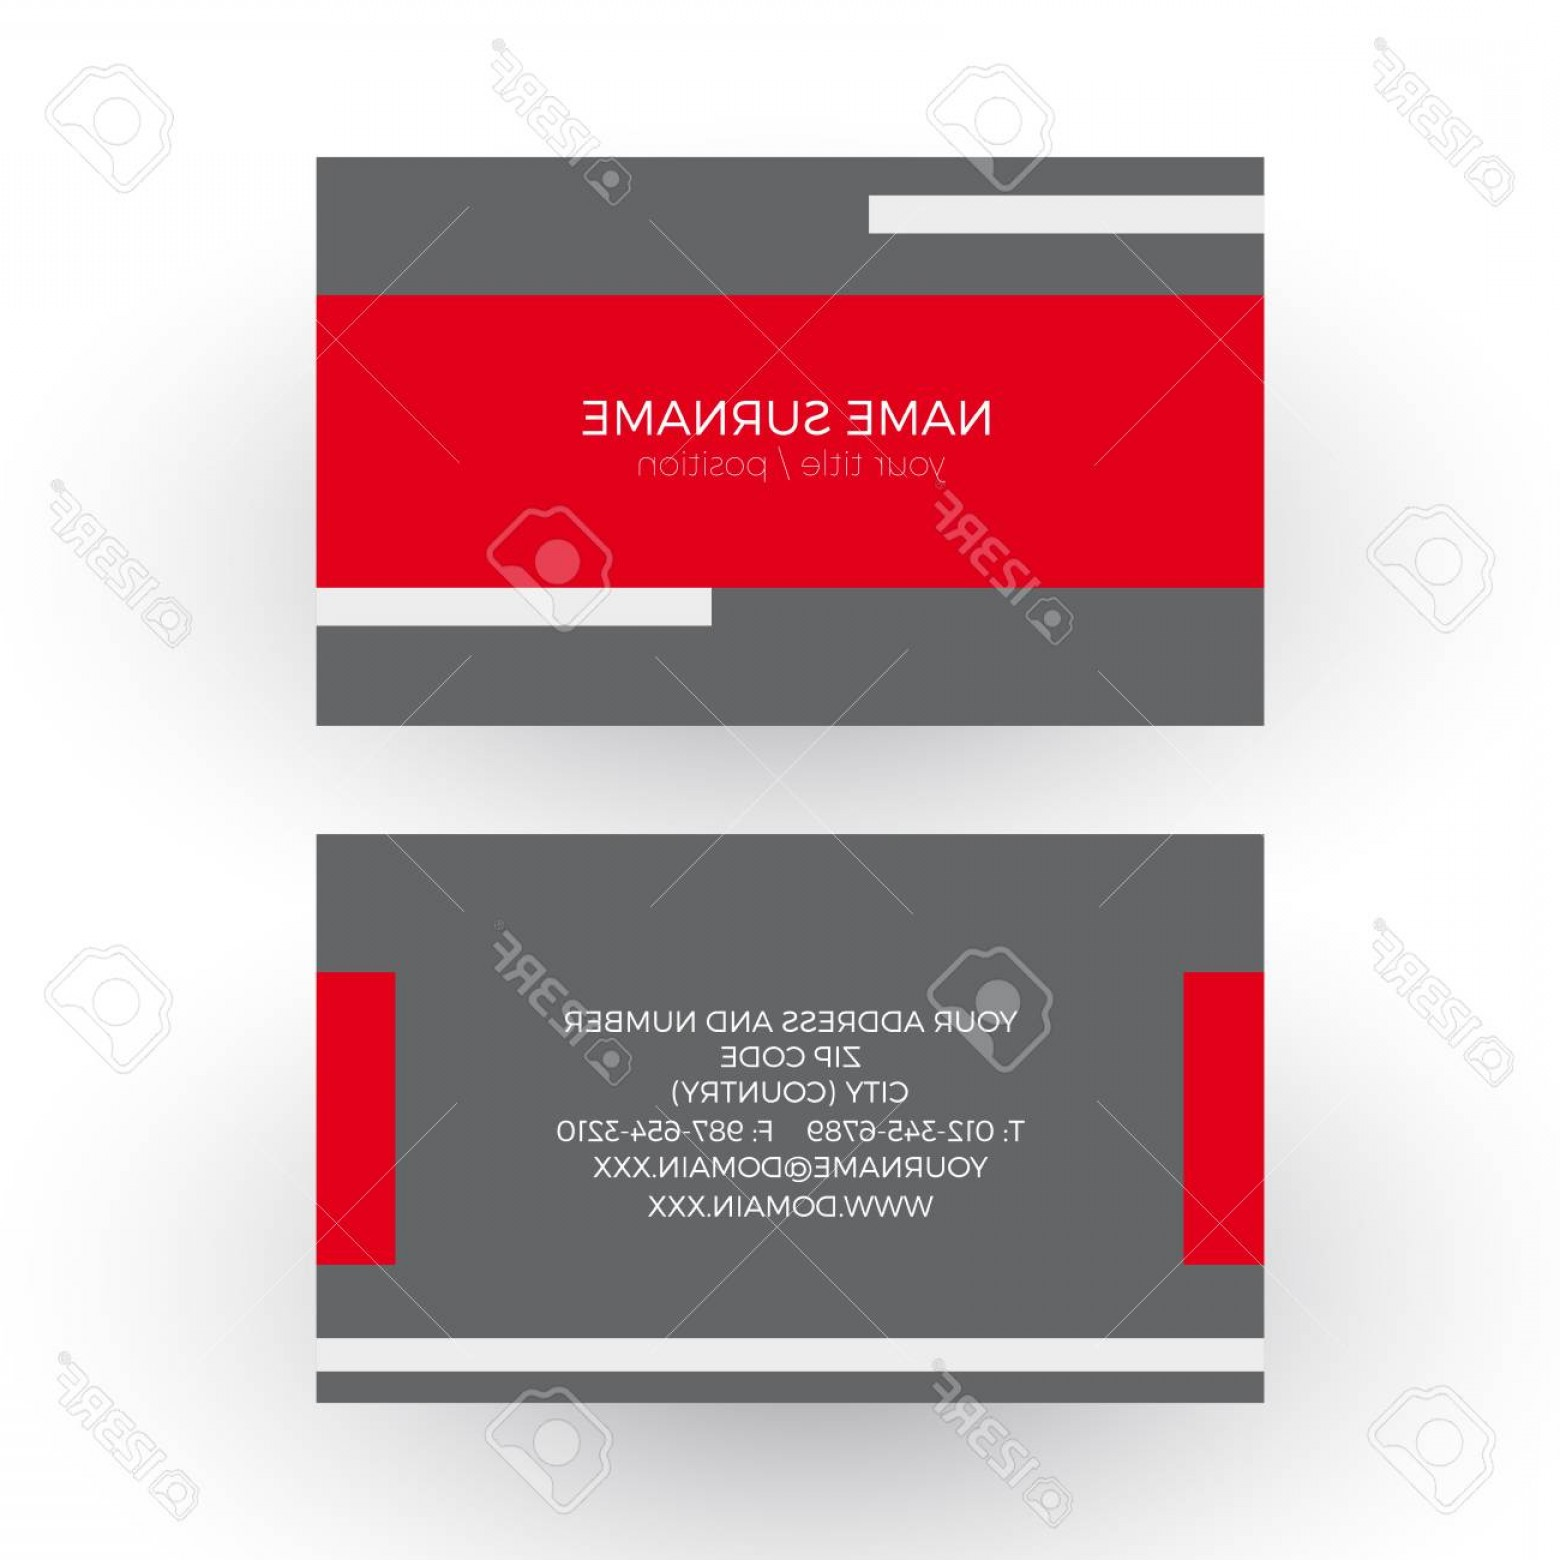 Red Professional Background Vectors: Photostock Vector Vector Red Minimal Geometric Background With Tape Professional And Formal Business Card